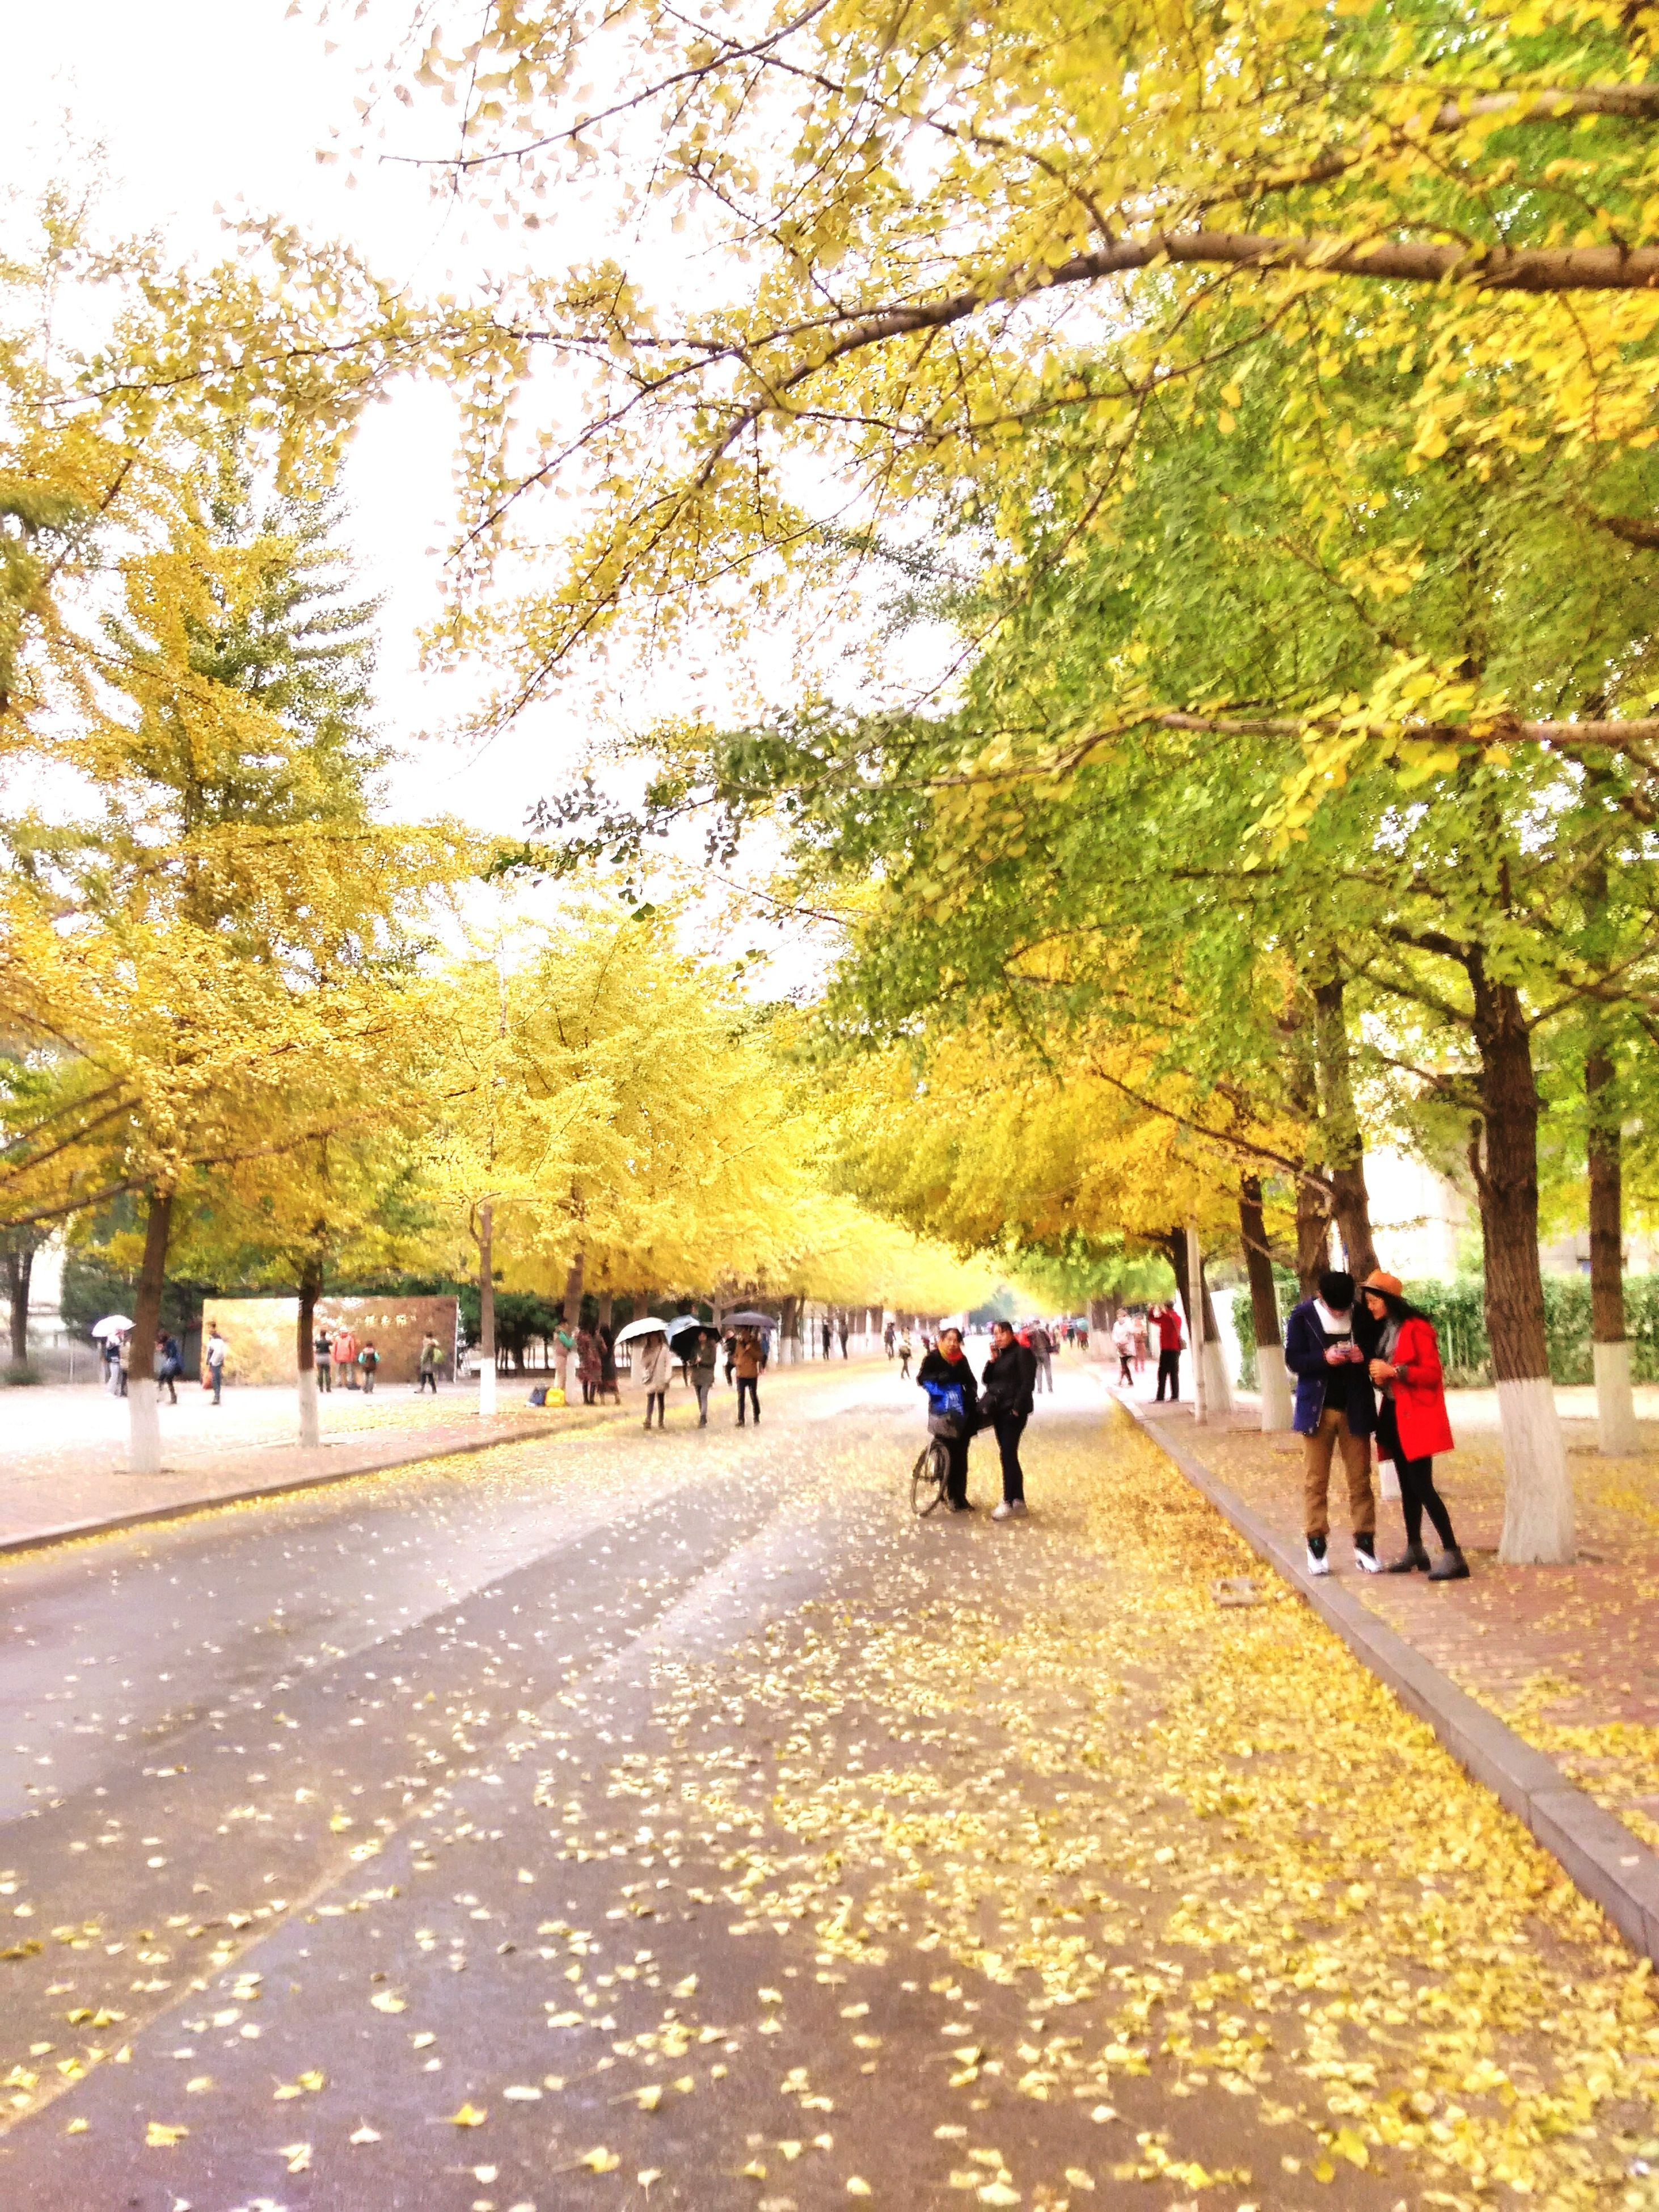 tree, men, person, walking, large group of people, lifestyles, leisure activity, autumn, street, treelined, road, growth, change, the way forward, mixed age range, park - man made space, footpath, branch, medium group of people